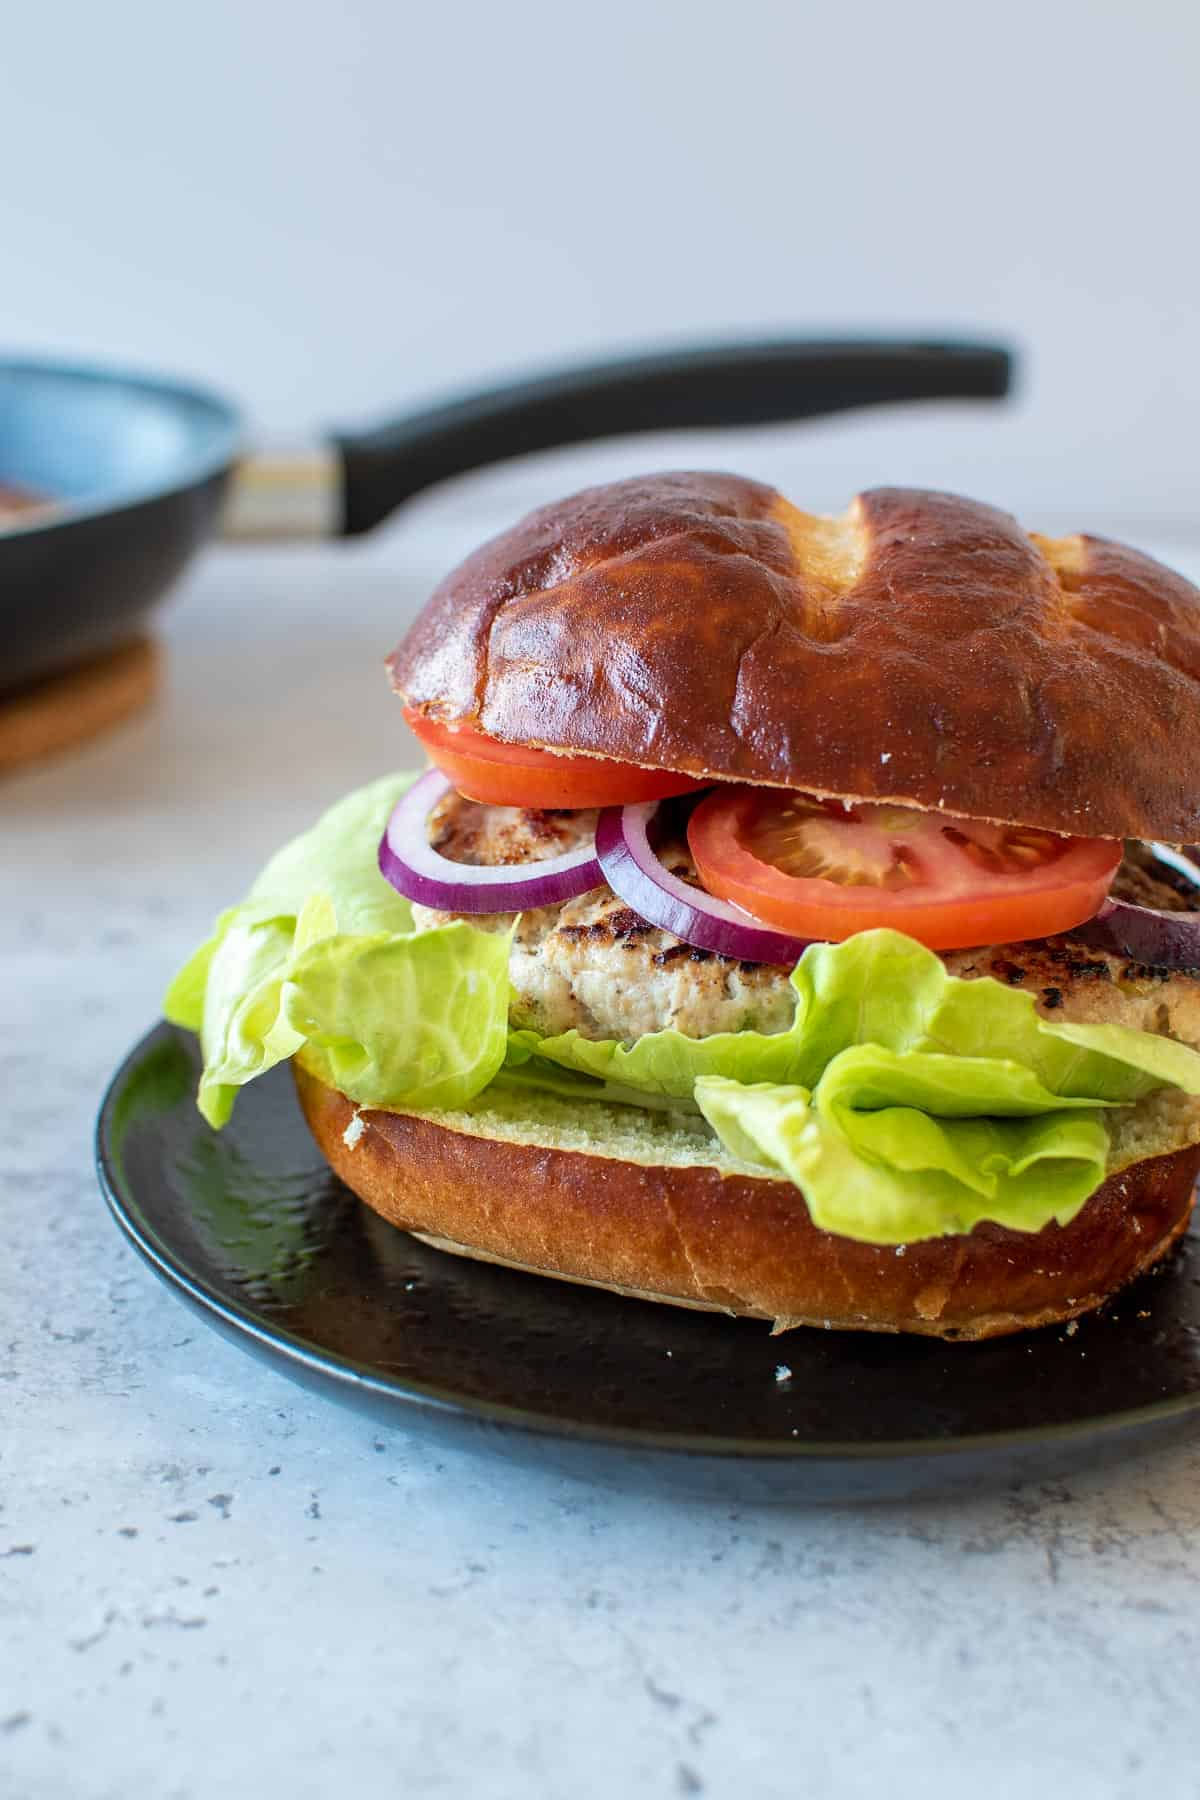 A burger on a plate, with a frying pan in the background.